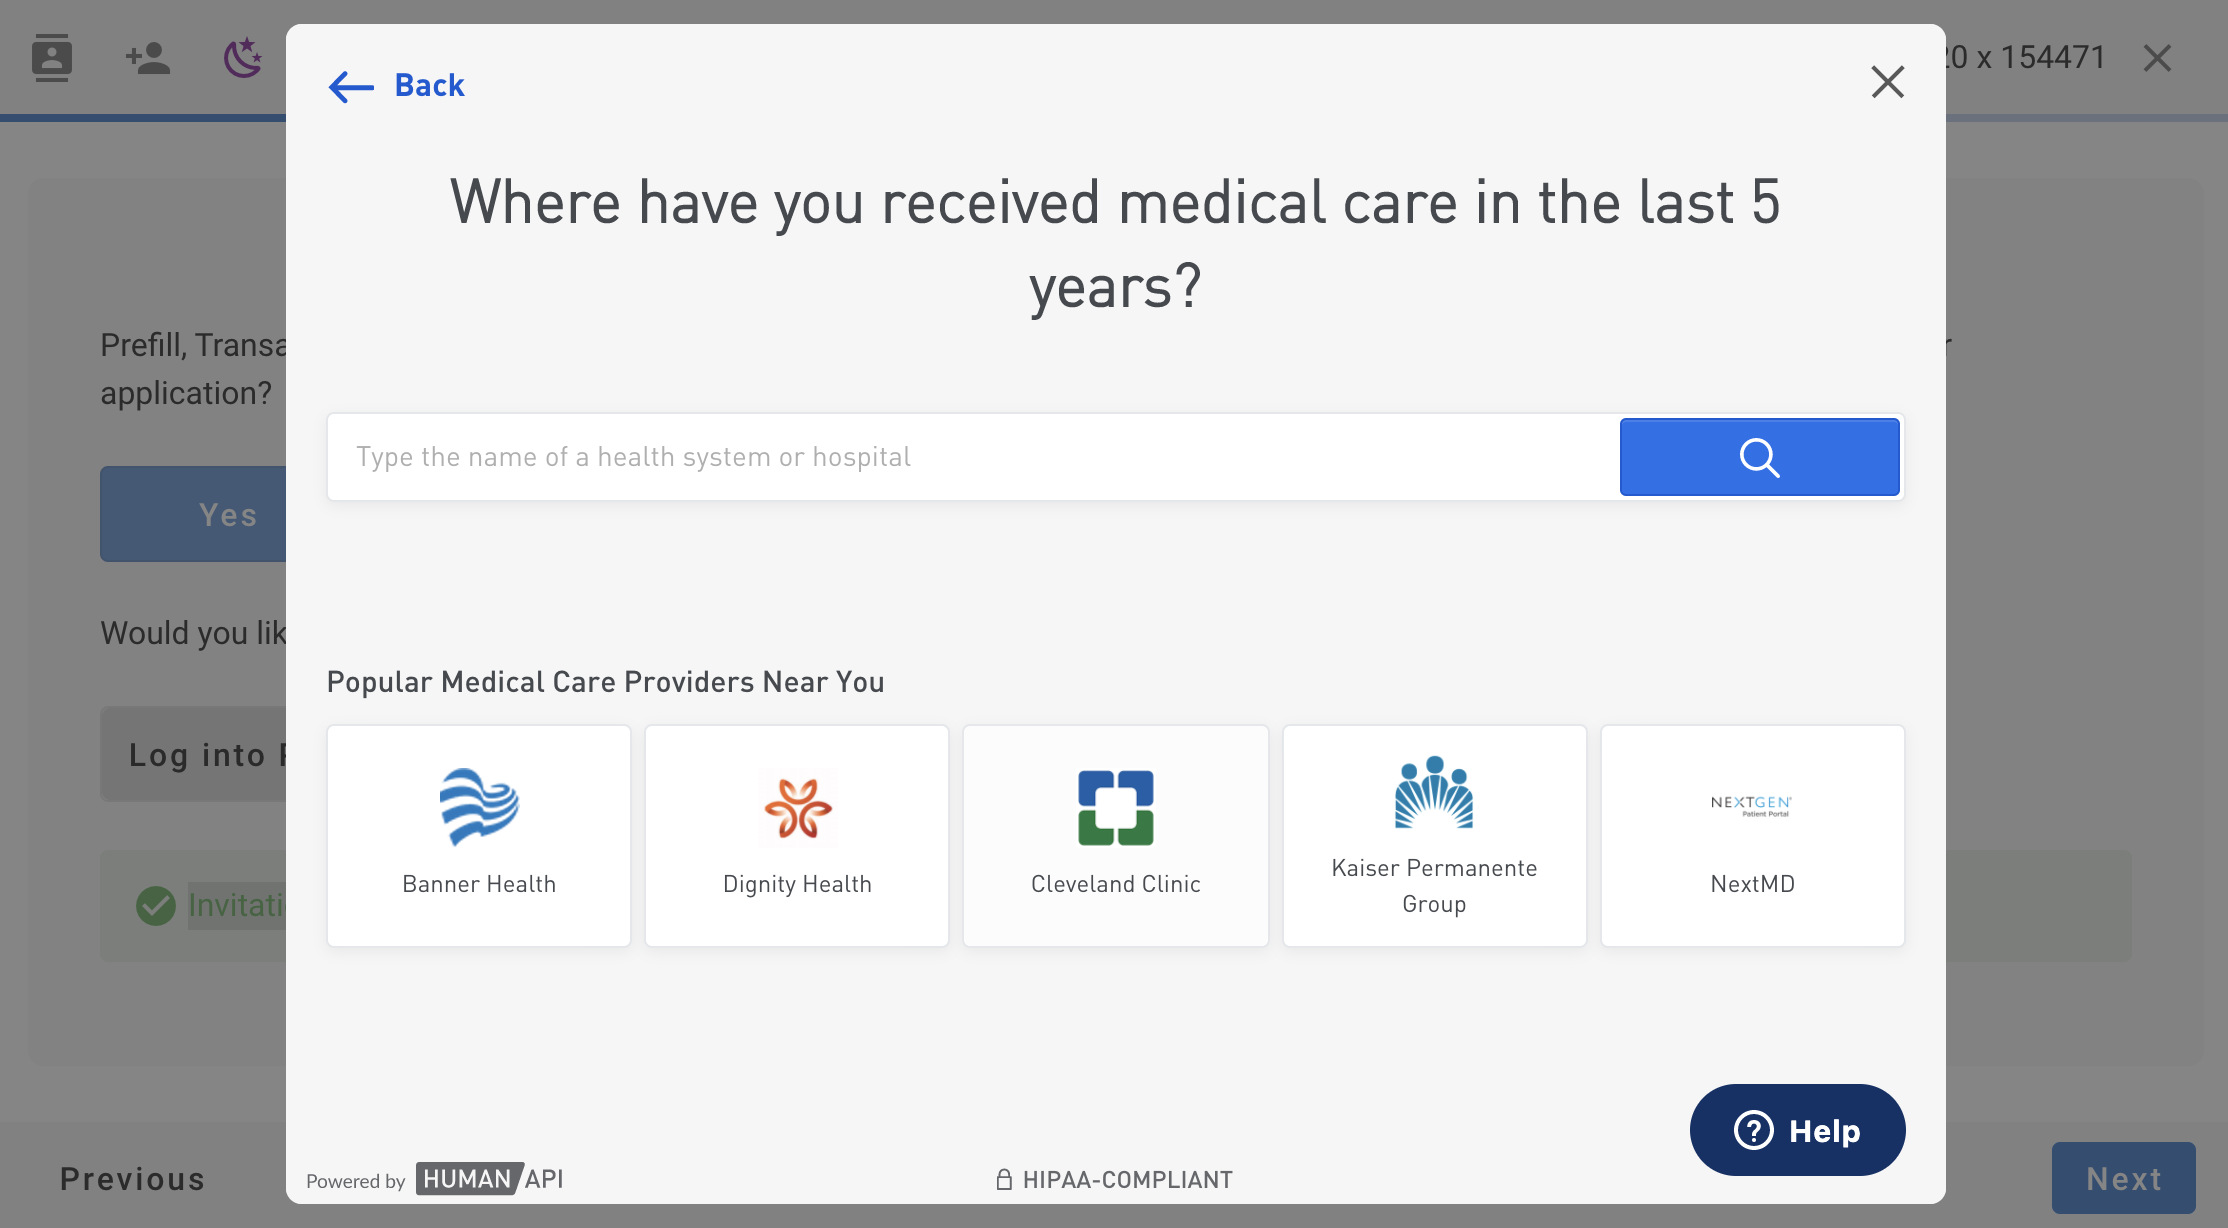 Log in to Patient Portal